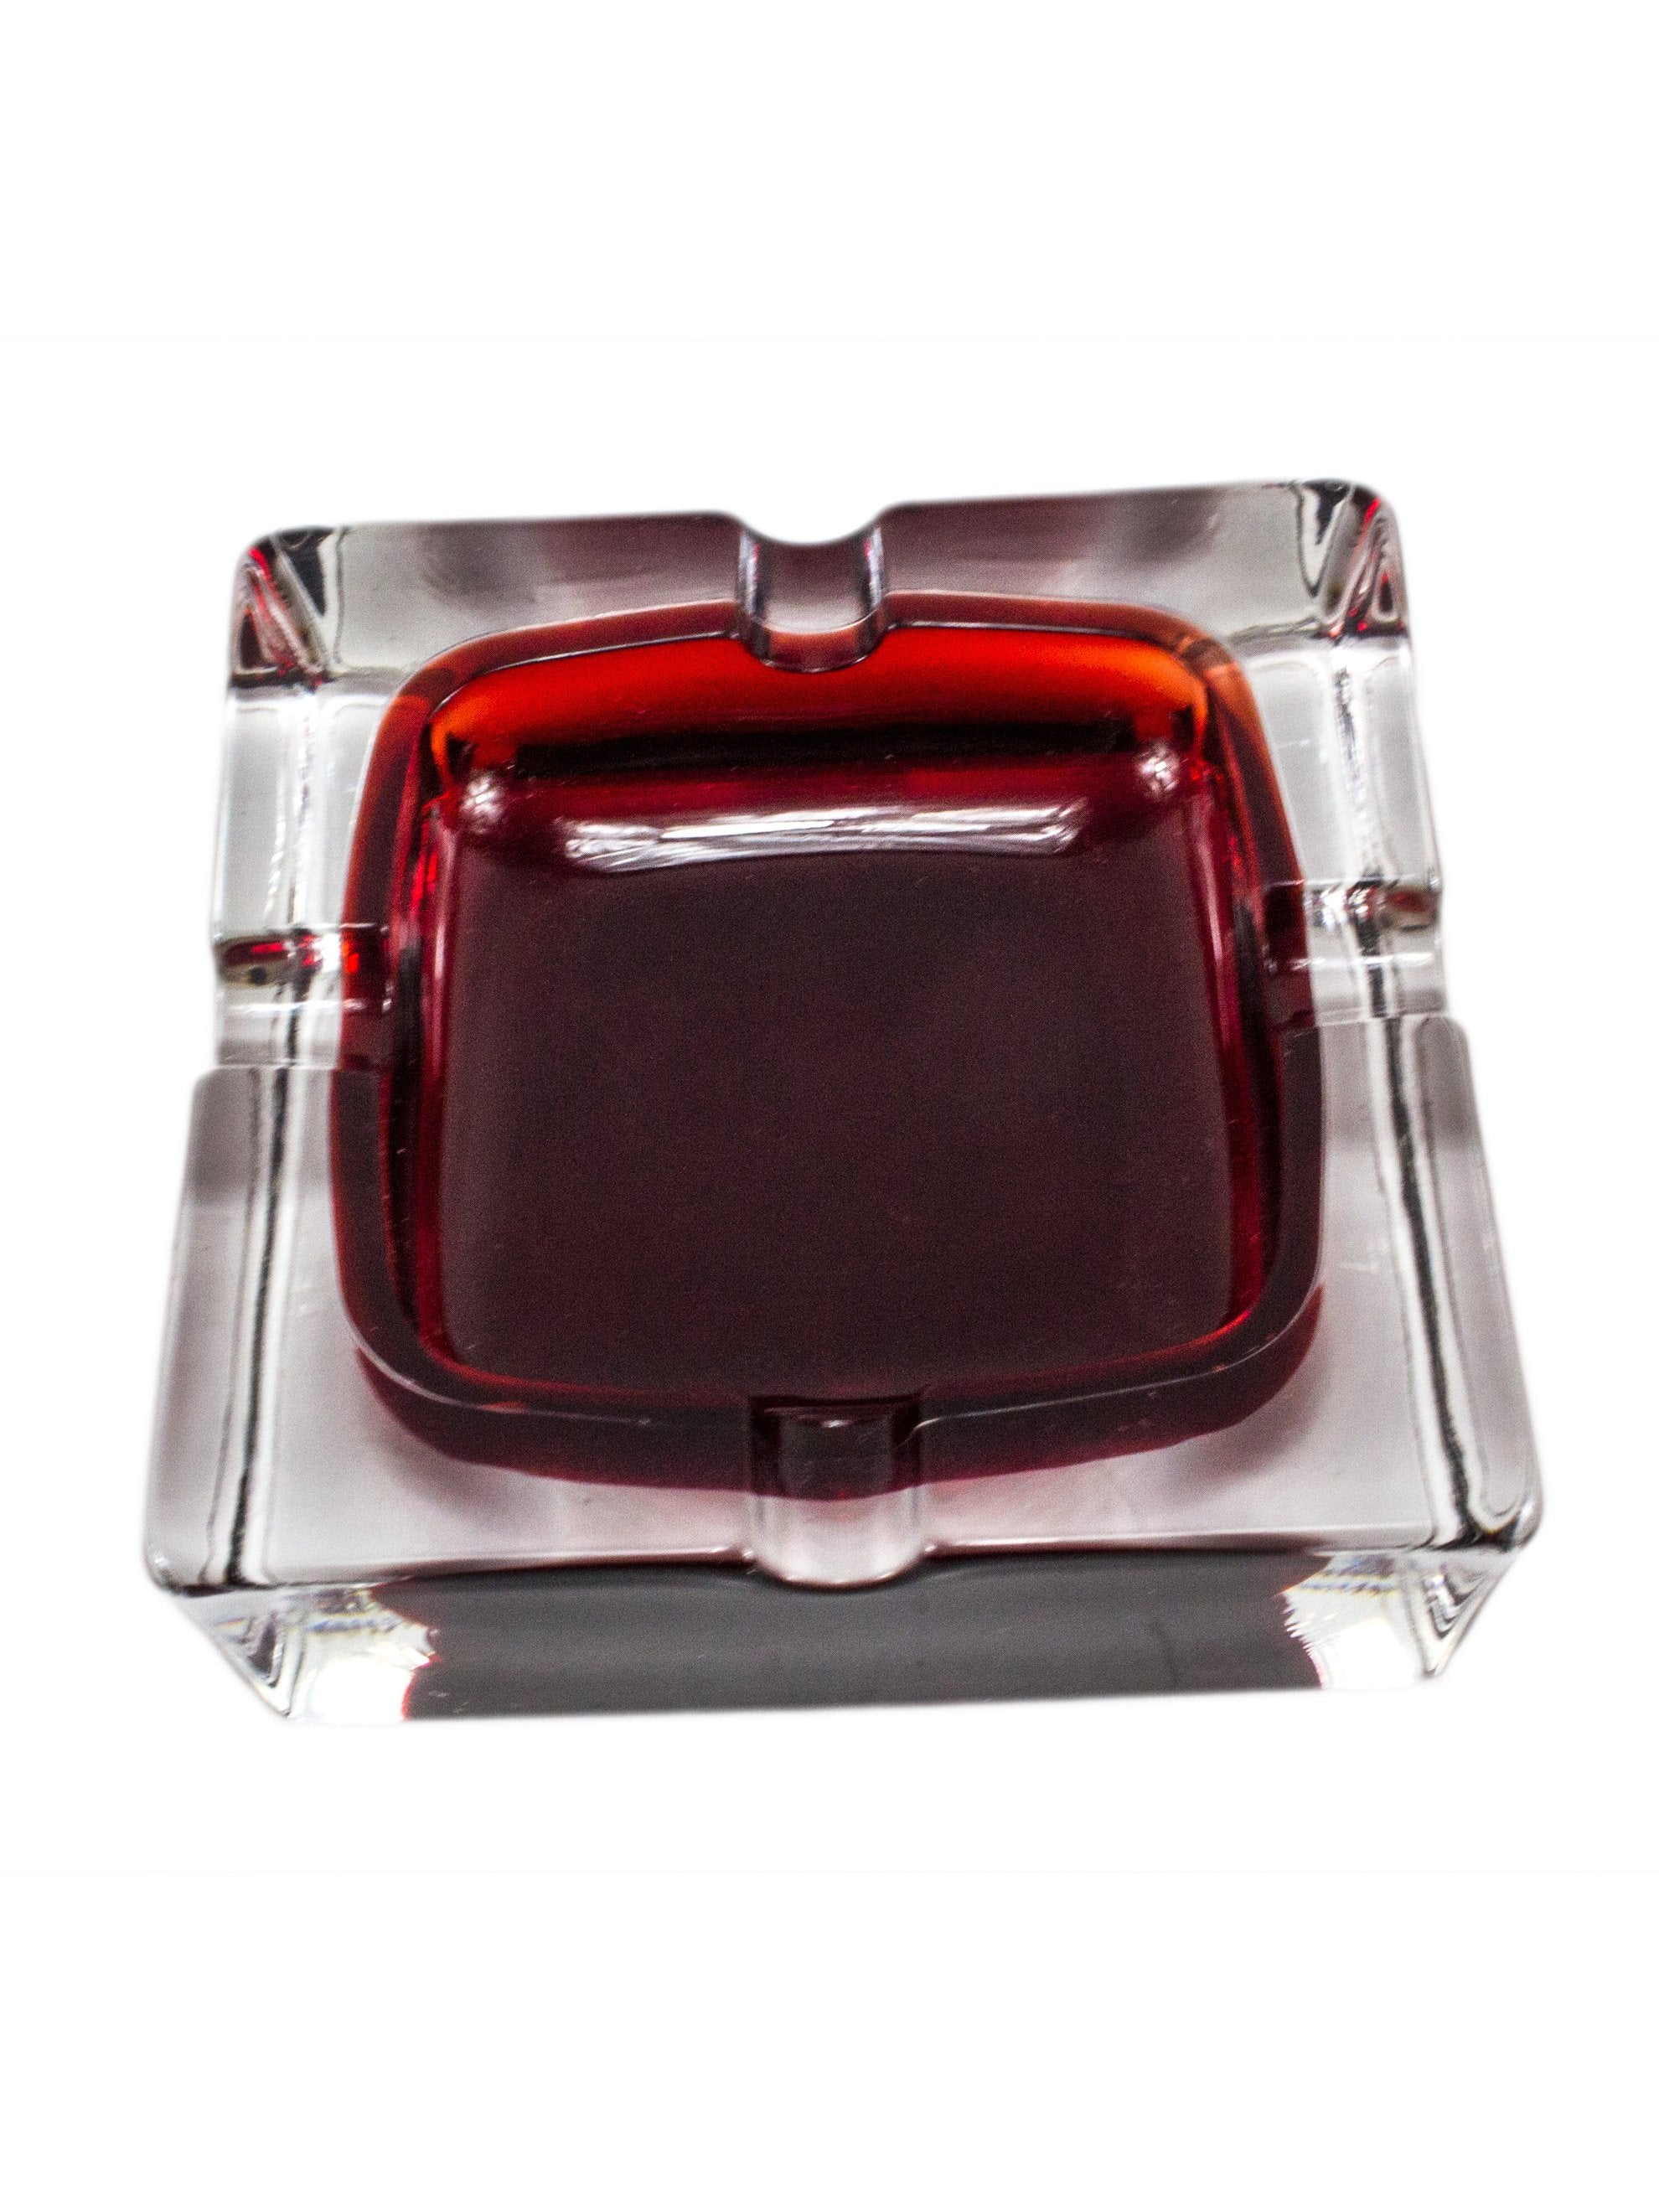 Vintage 1960's Italian Glass Ashtray